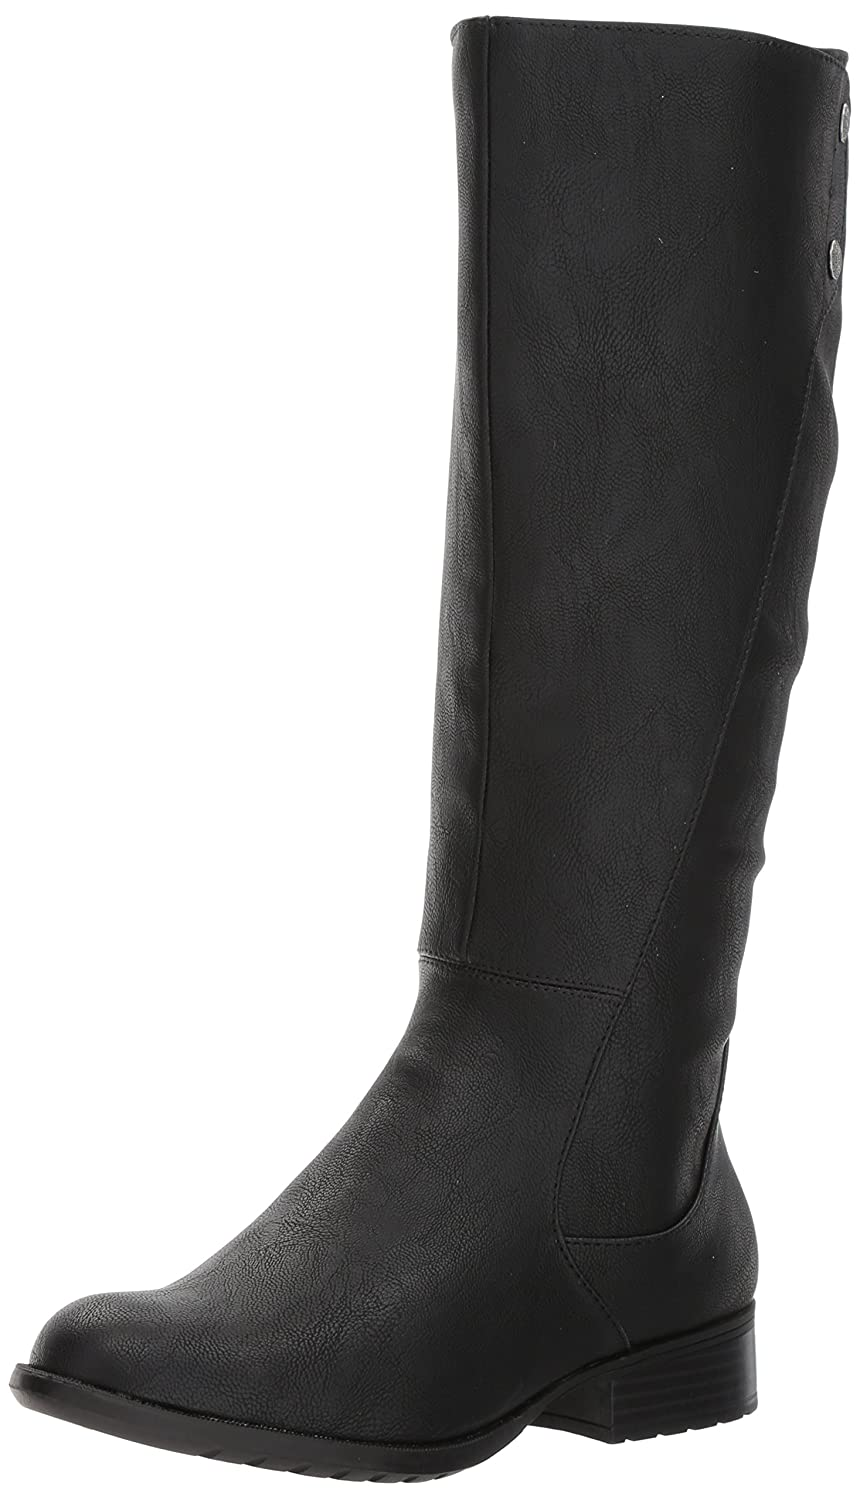 LifeStride Women's Xripley Riding Boot B071JXLCWD 7 W US|Black